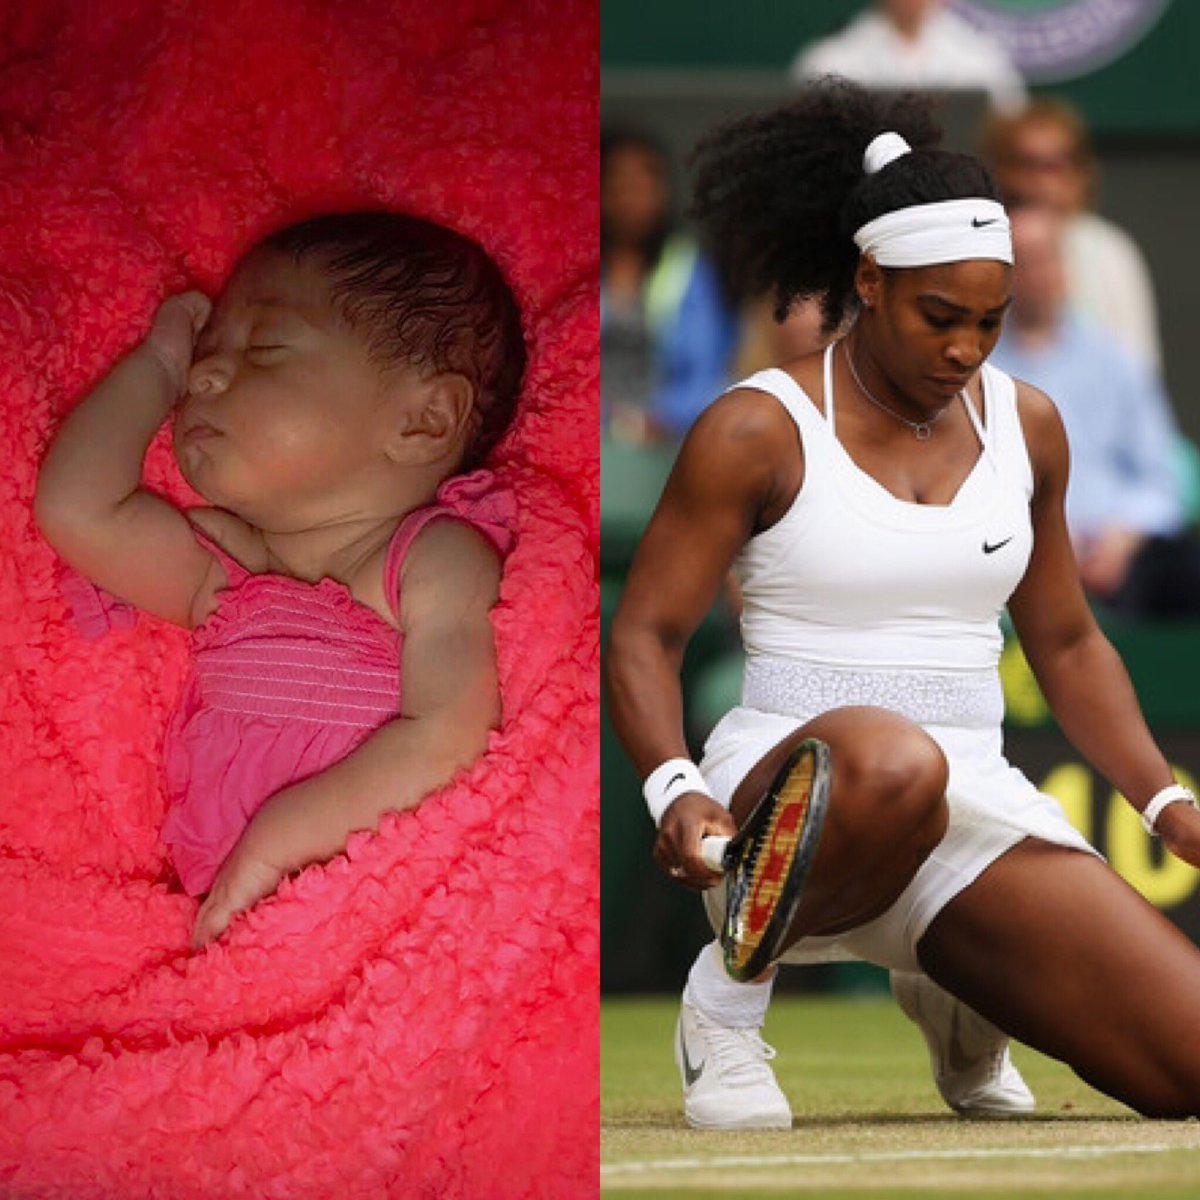 RT @serenawilliams: Letter to my mom.  https://t.co/a9AmhMjrGv https://t.co/TKCH4CLxat